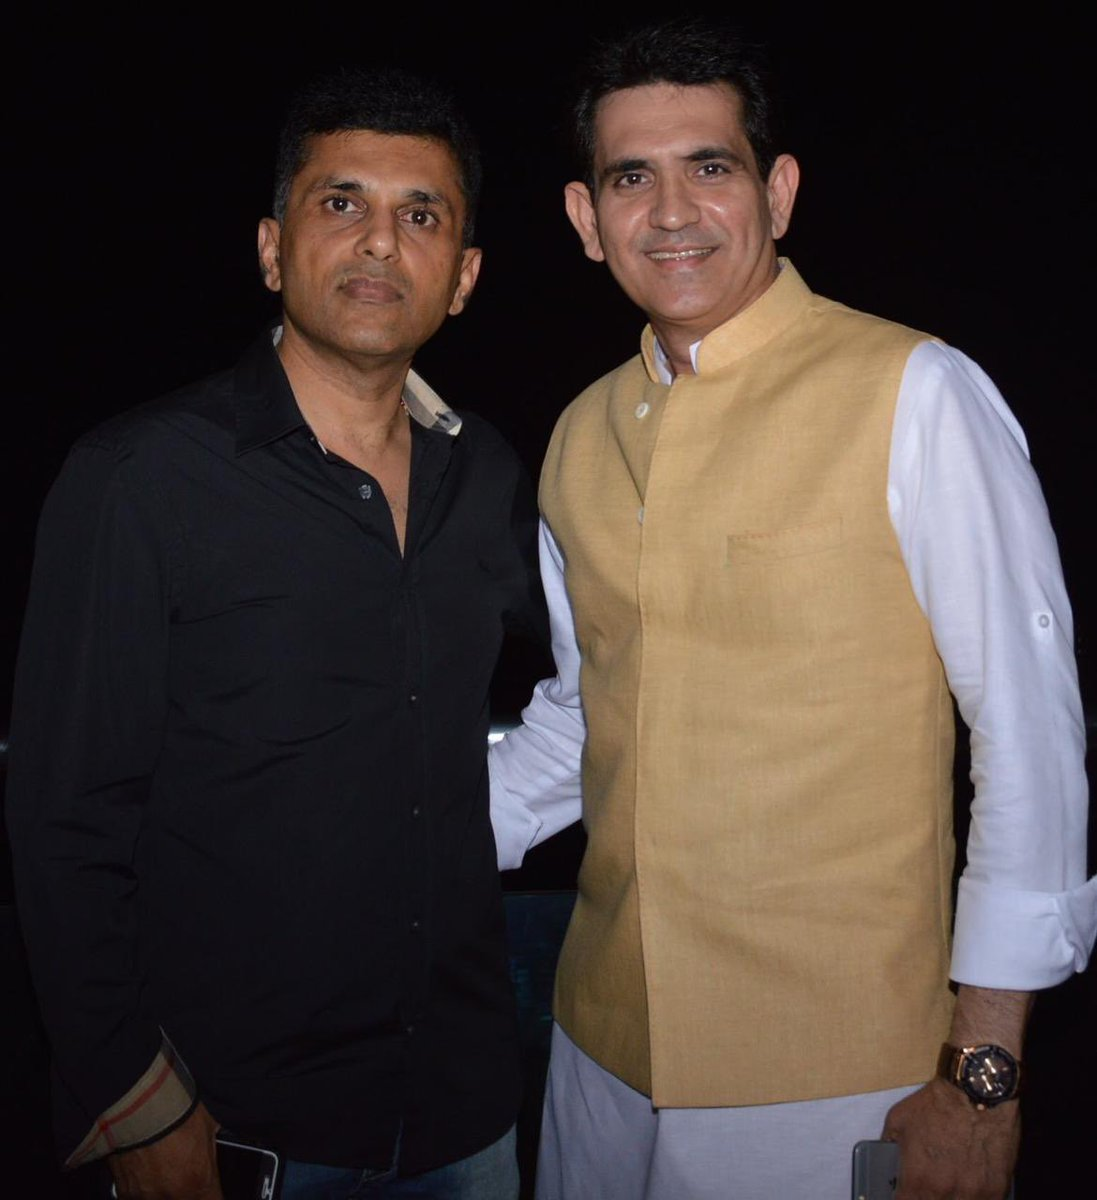 Happy birthday to you @OmungKumar. May you continue to inspire us with your creative genius. My warmest wishes for good health, success and prosperity! #HappyBirthday https://t.co/dDyTN34OCO